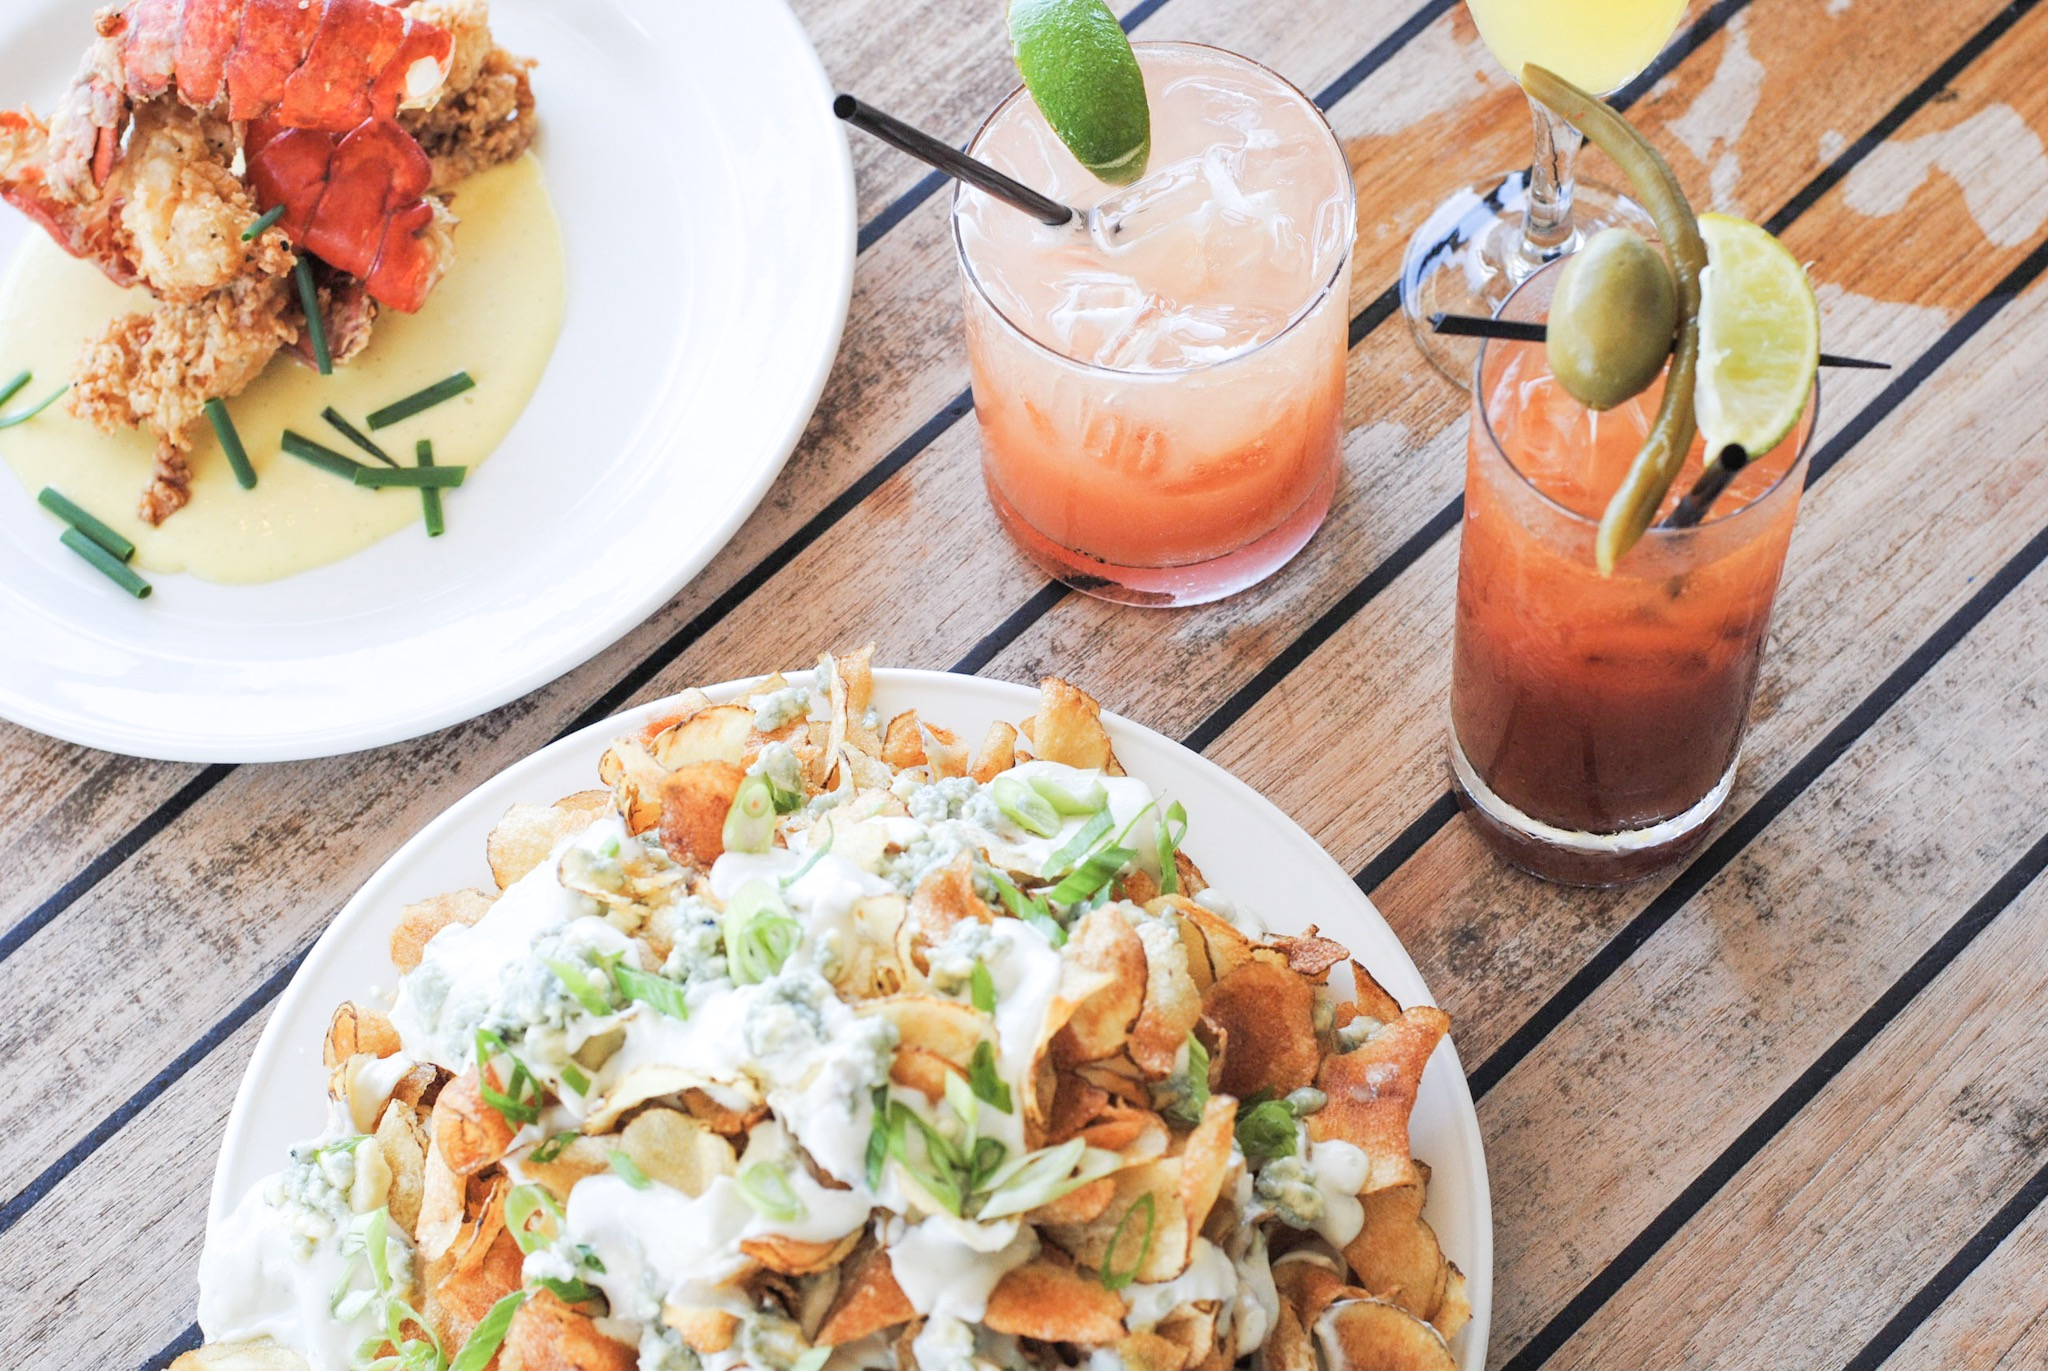 The margaritas are fresh squeezed and the mid afternoon snacks taste as good as they look.